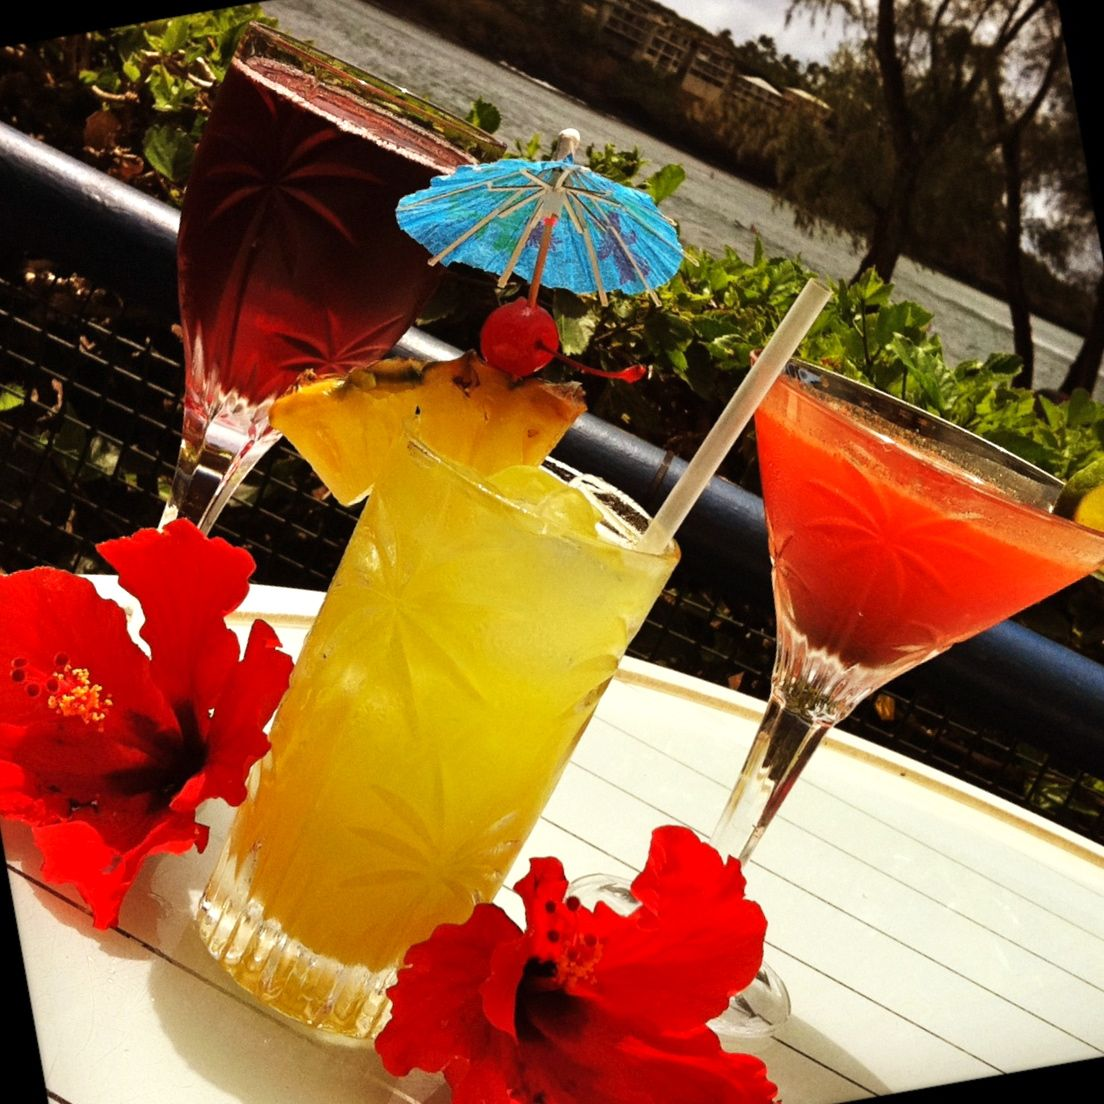 Cocktails Anyone ?  #JJ's Broiler  #Beach  #Summer